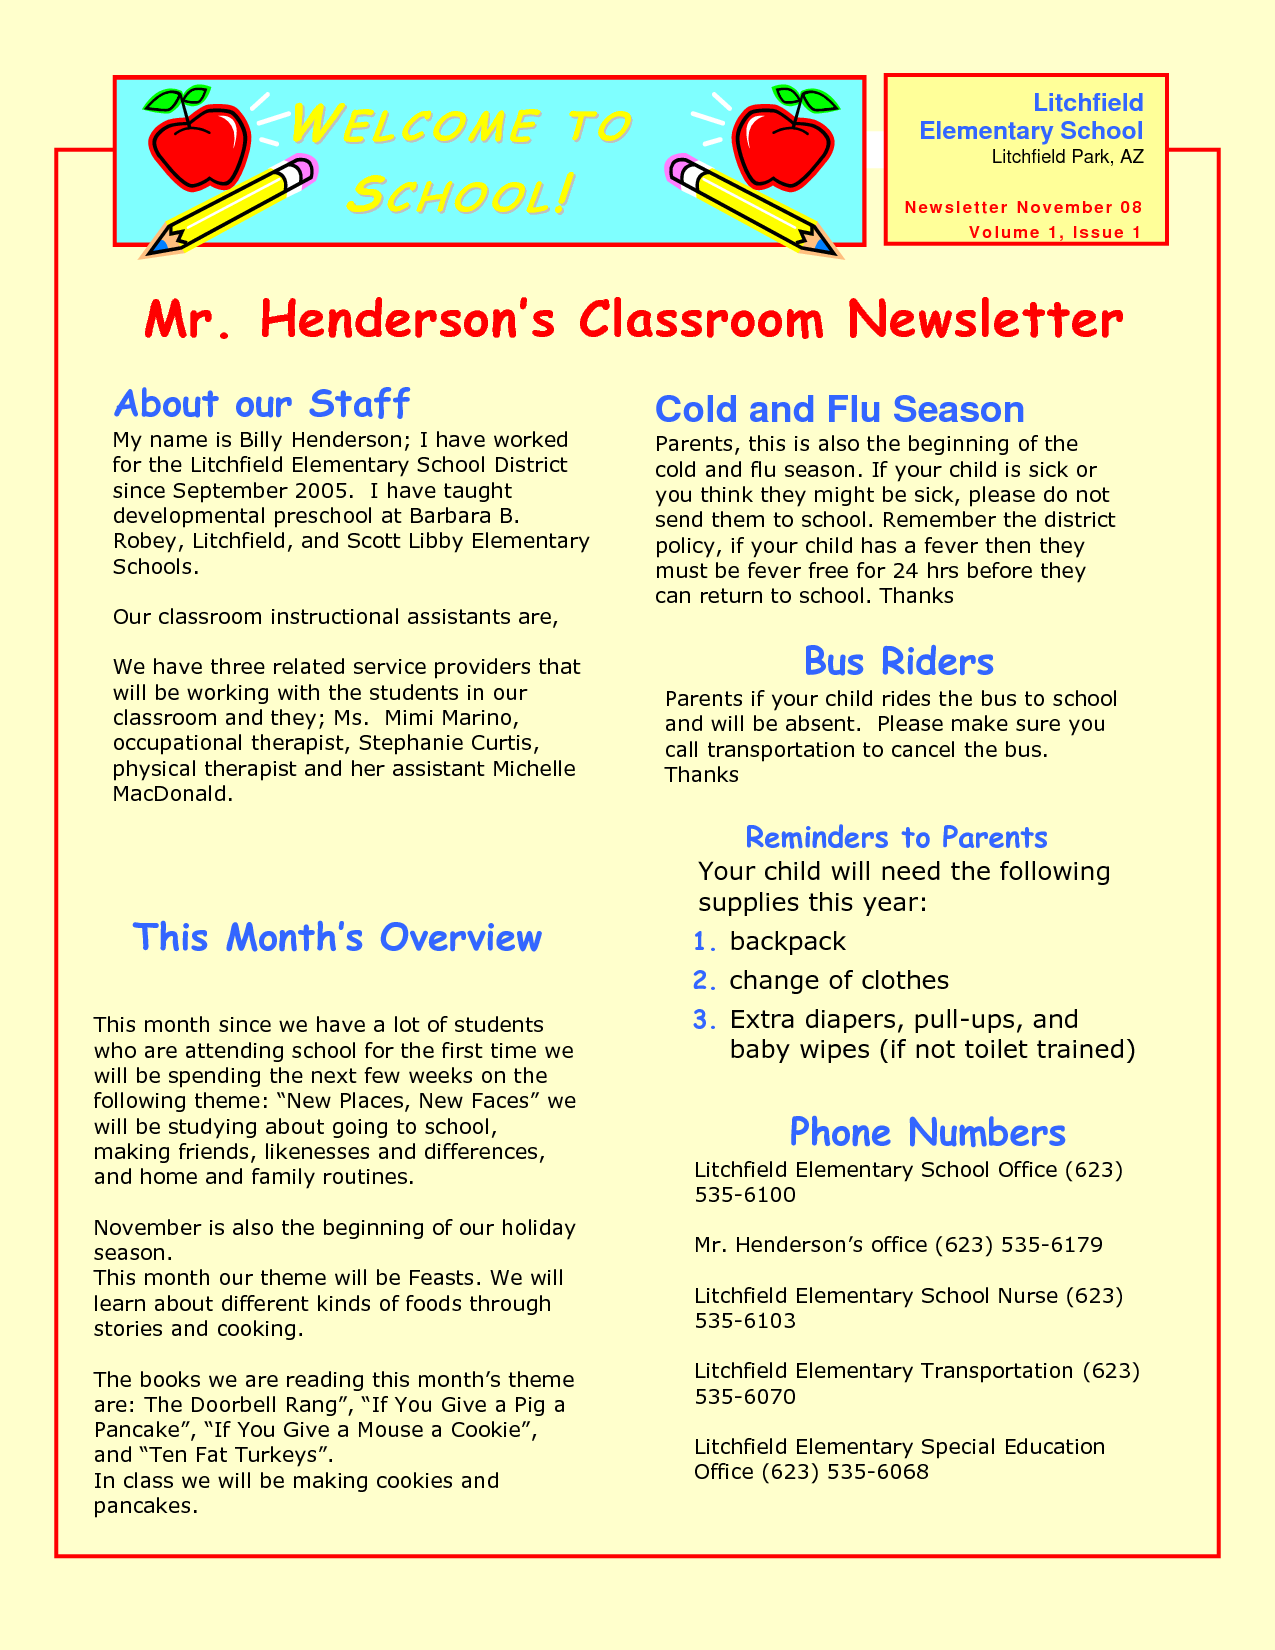 Preschool Newsletter Samples Preschool Newsletters